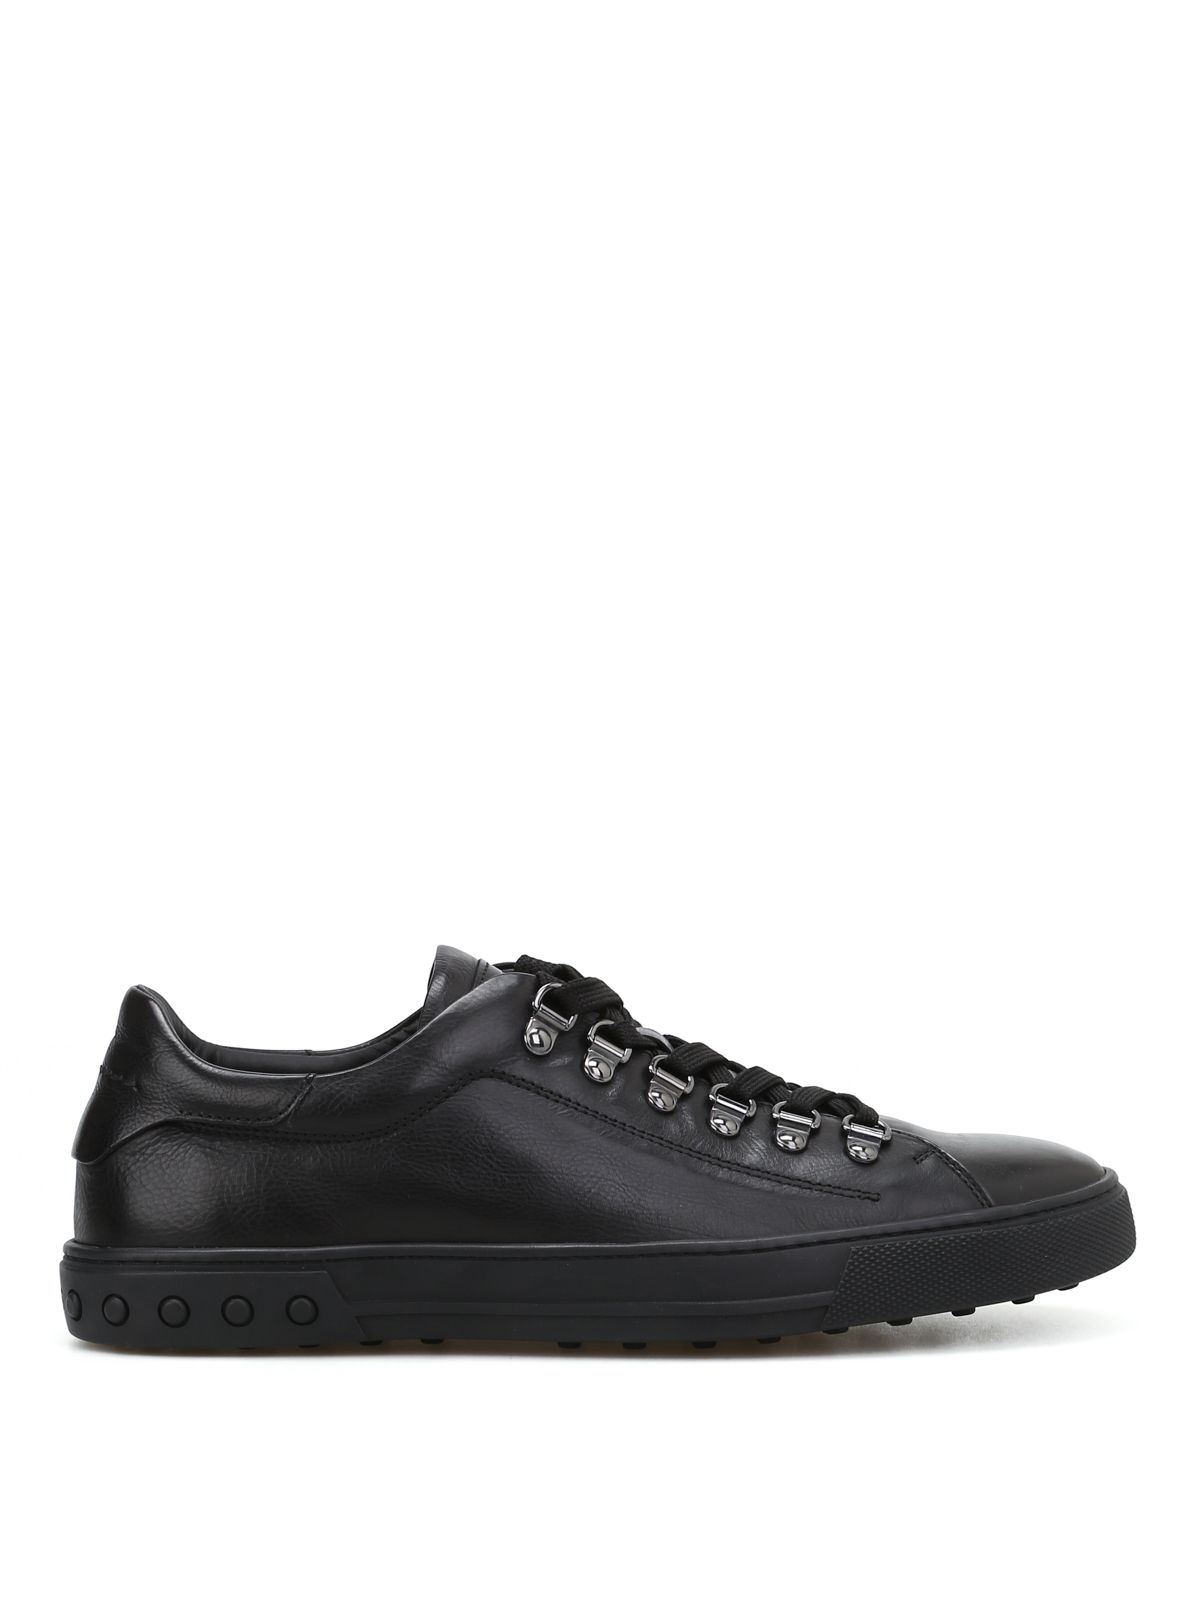 Tod's Black Leather Sneakers With Gommini